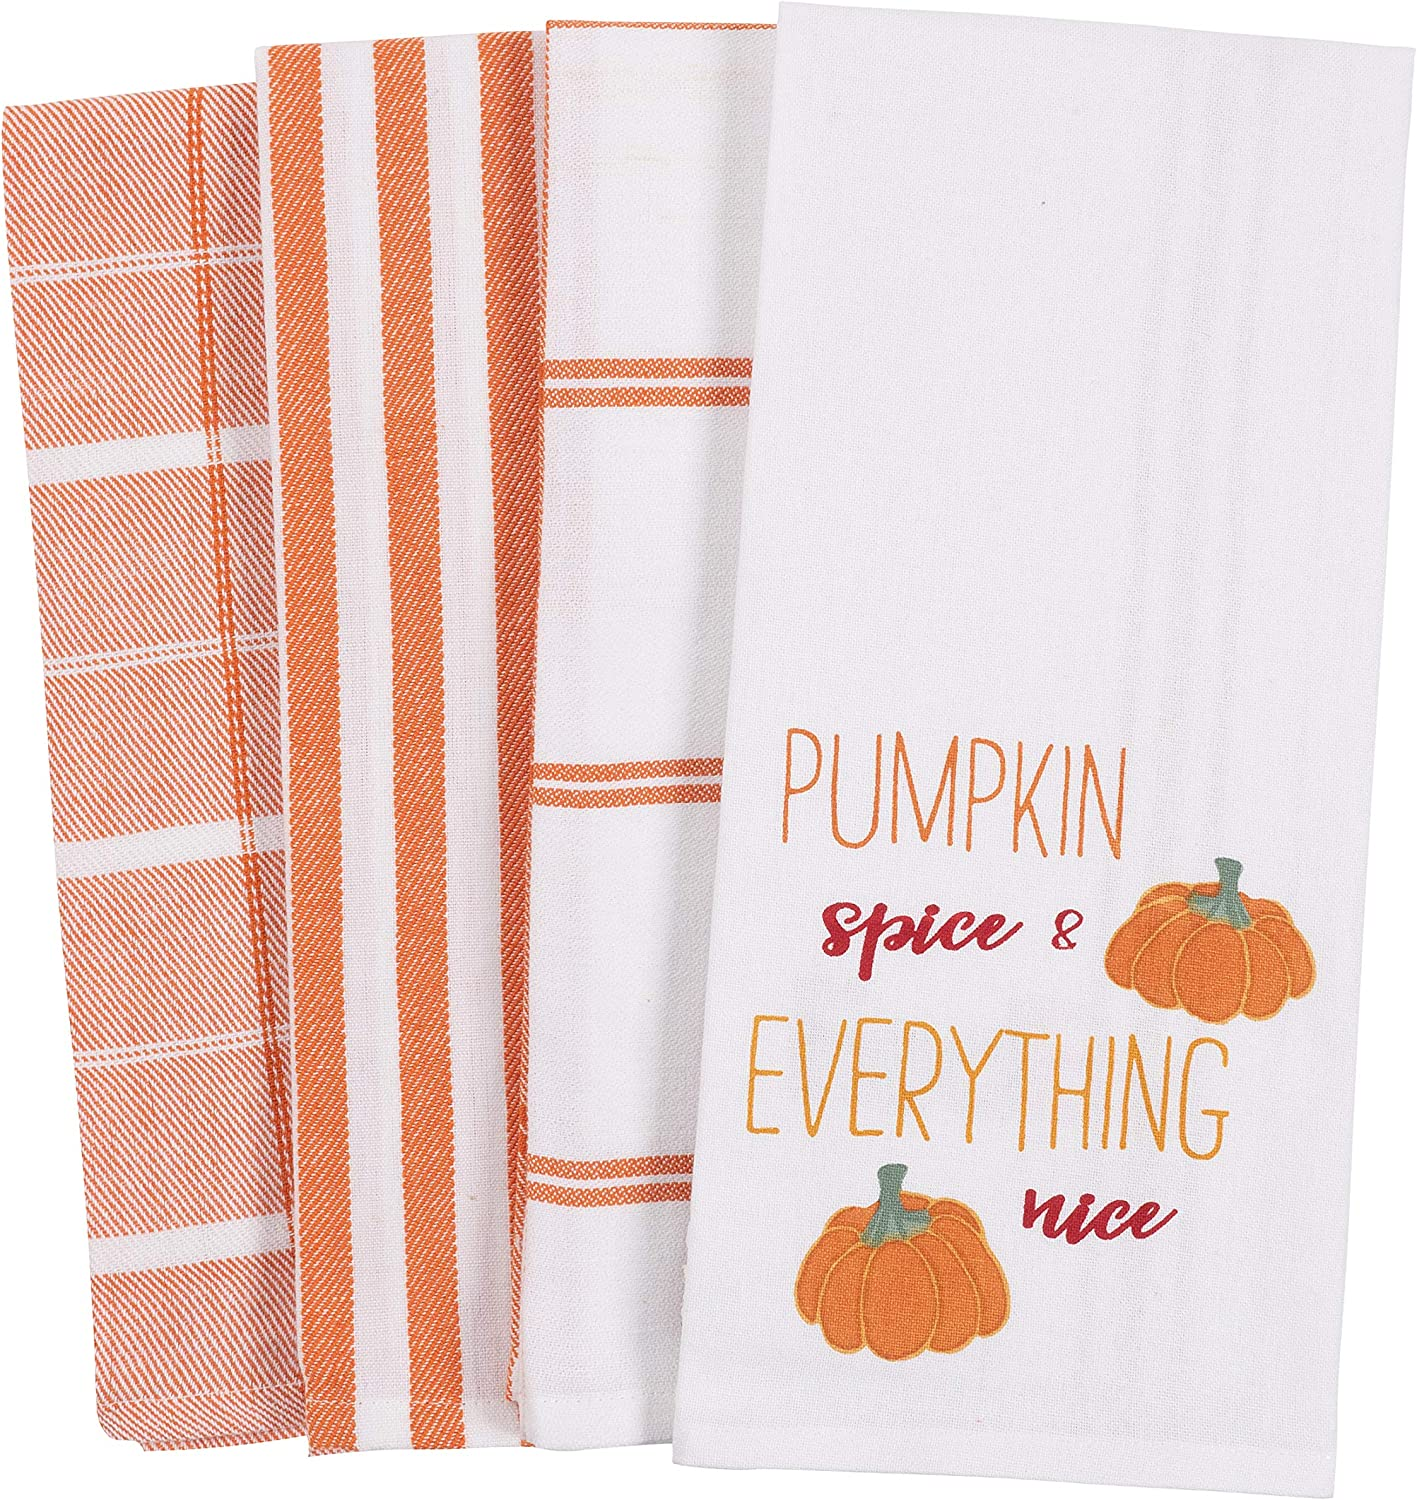 KAF Home Set of 4 Mixed Holiday Dish Towels 18 x 28 Inches 100/% Cotton Peace and Joy